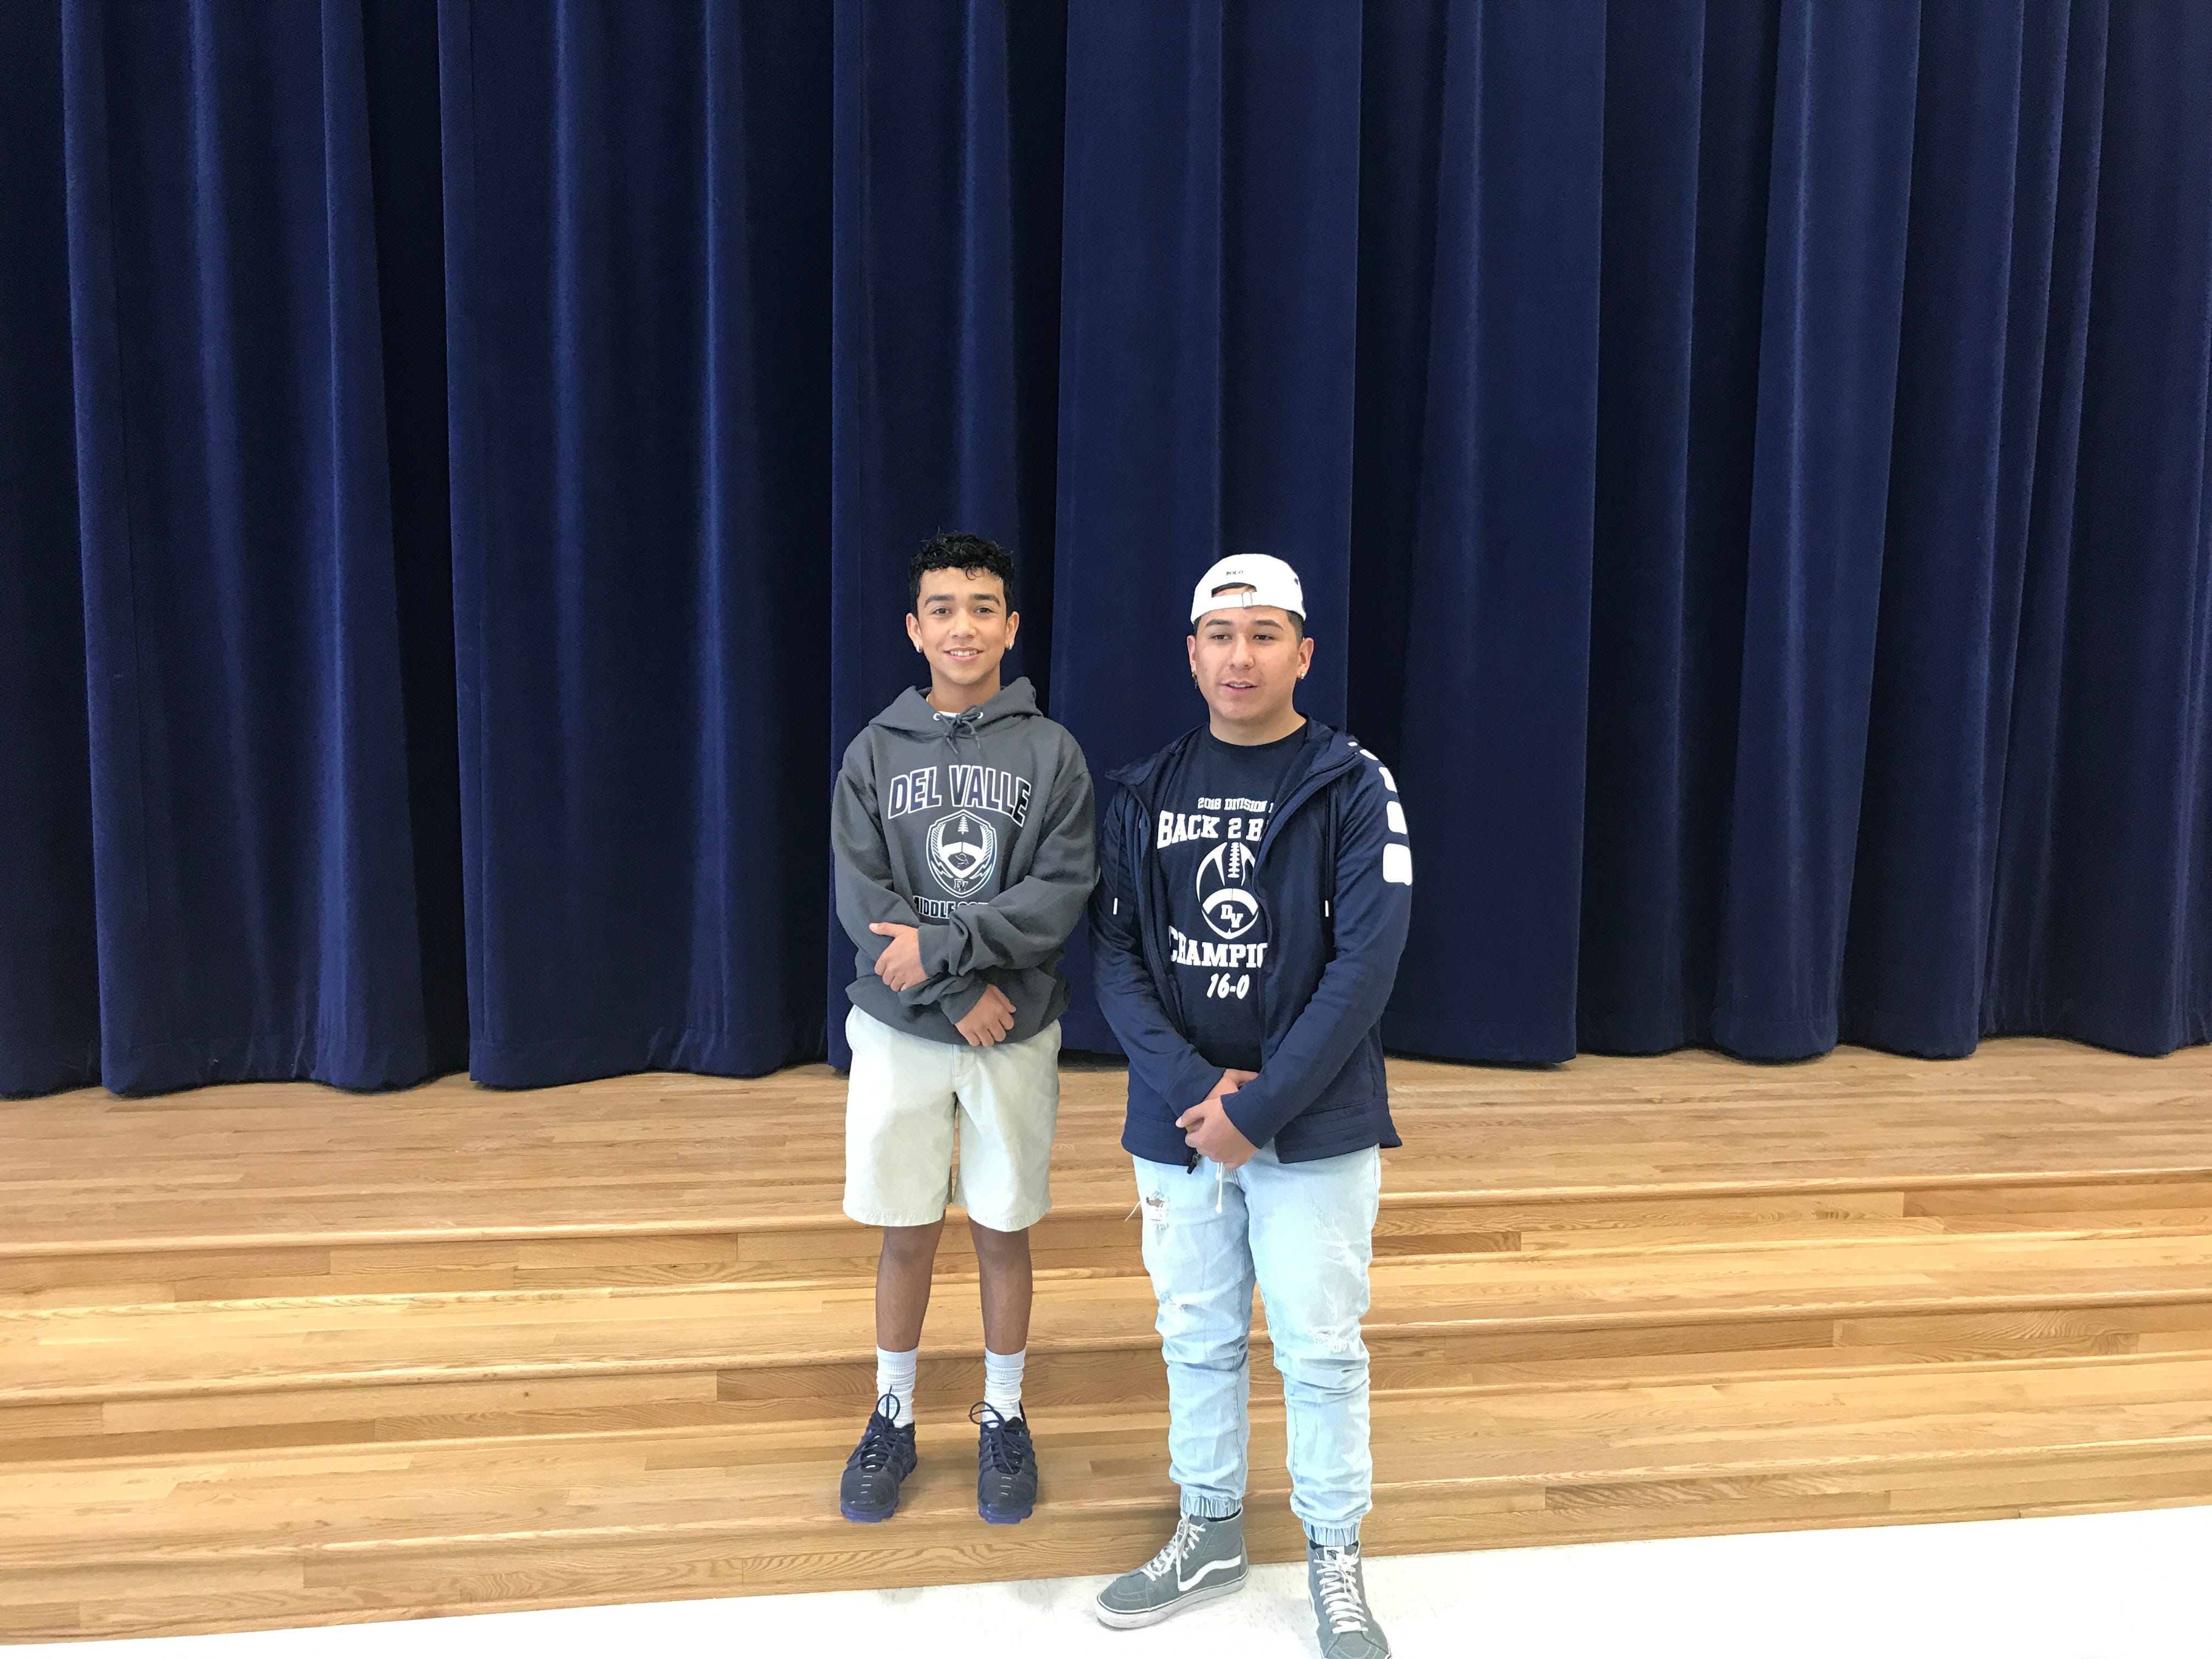 Eight graders R. J. Bracamontes and Jesus Ceniceros stand on the stage of the cafeteria of their new campus.